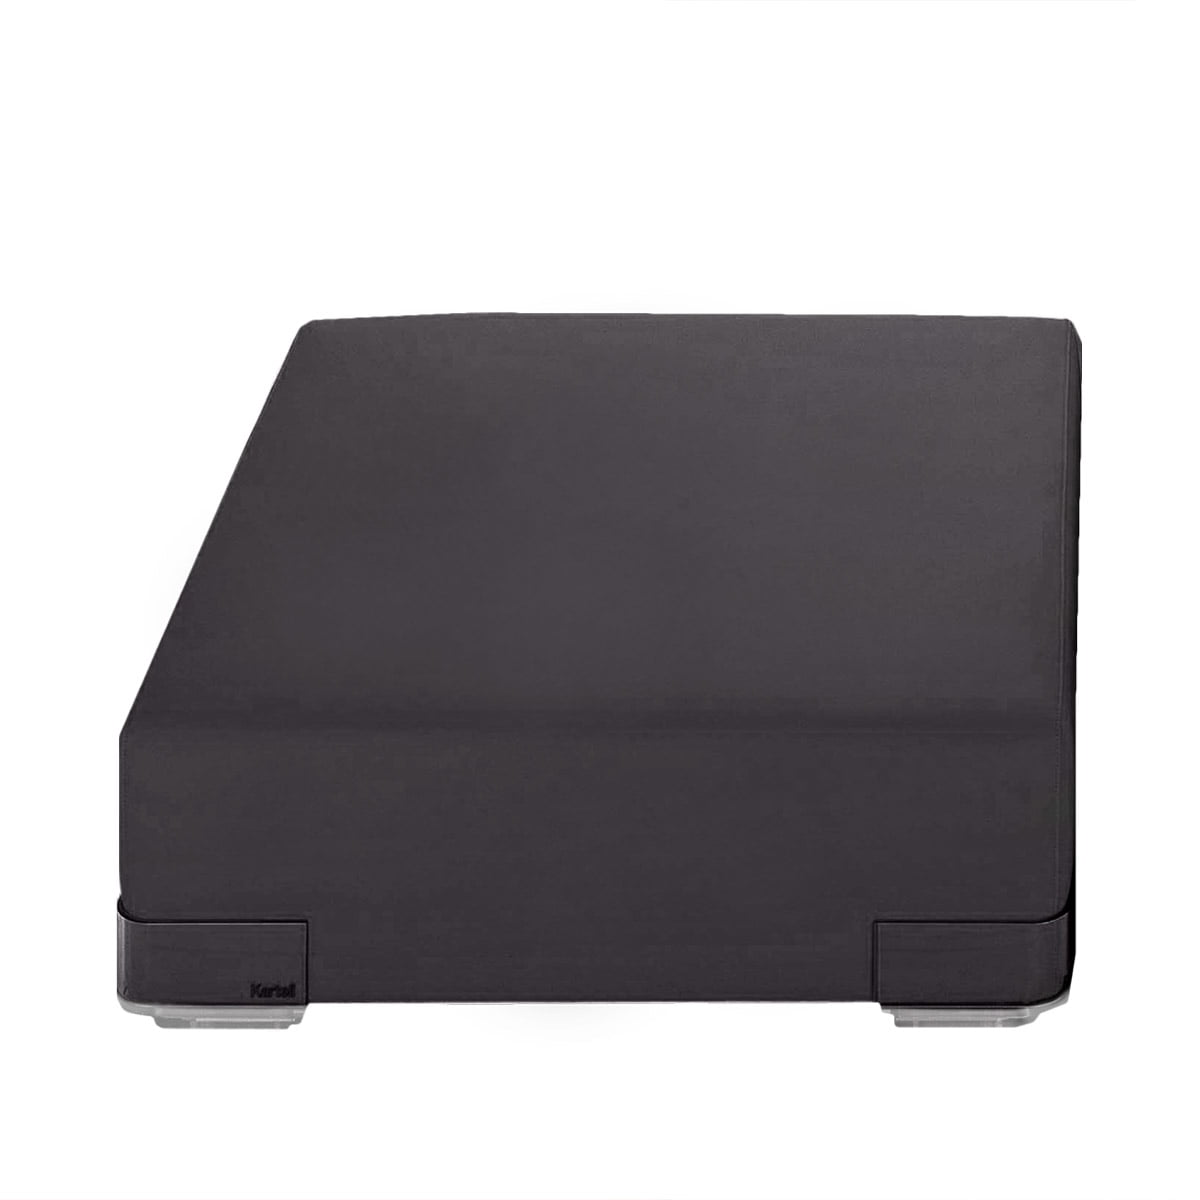 kartell plastics sofa einzelelement ohne r ckenlehne schwarz schwarz t 90 h 30 b 90 online. Black Bedroom Furniture Sets. Home Design Ideas